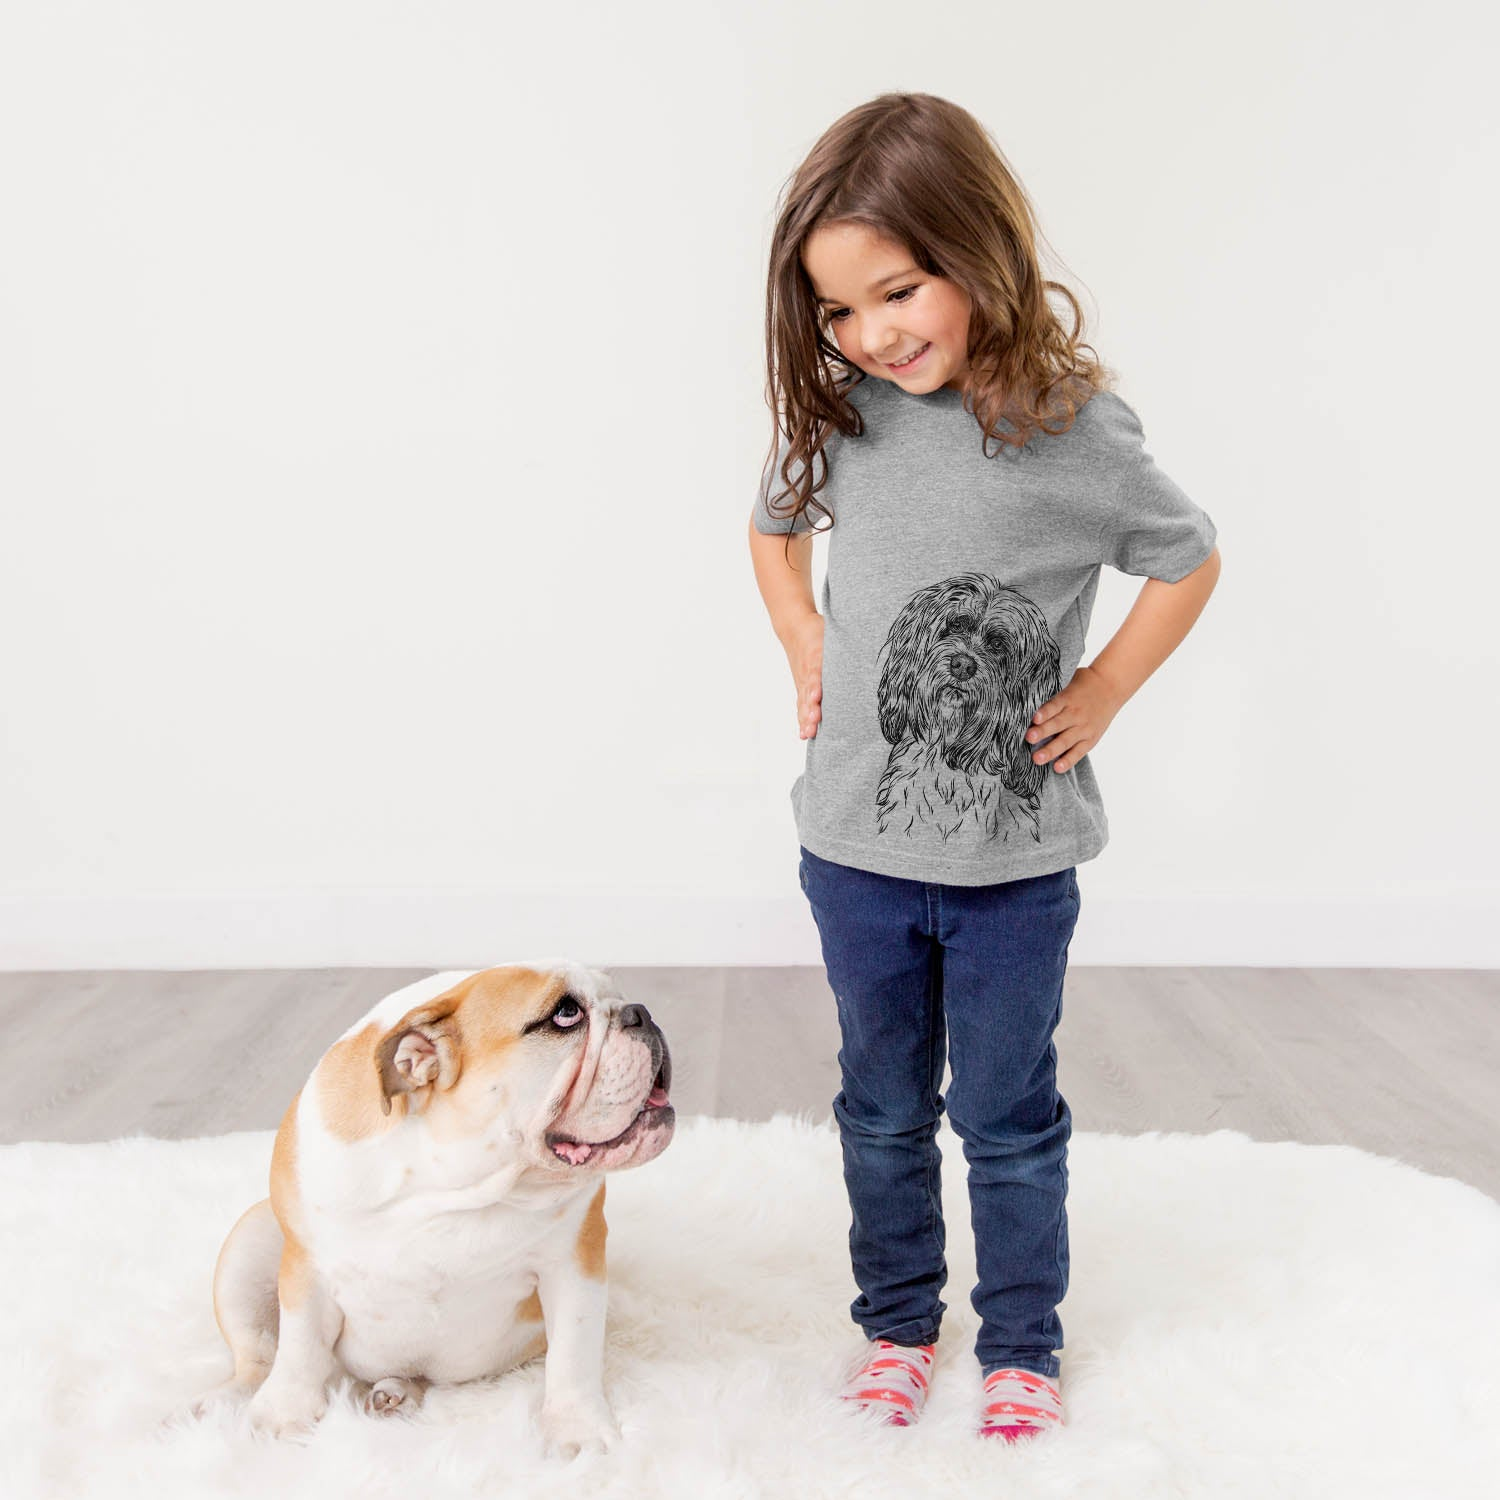 Shenpa the Tibetan Terrier - Kids/Youth/Toddler Shirt